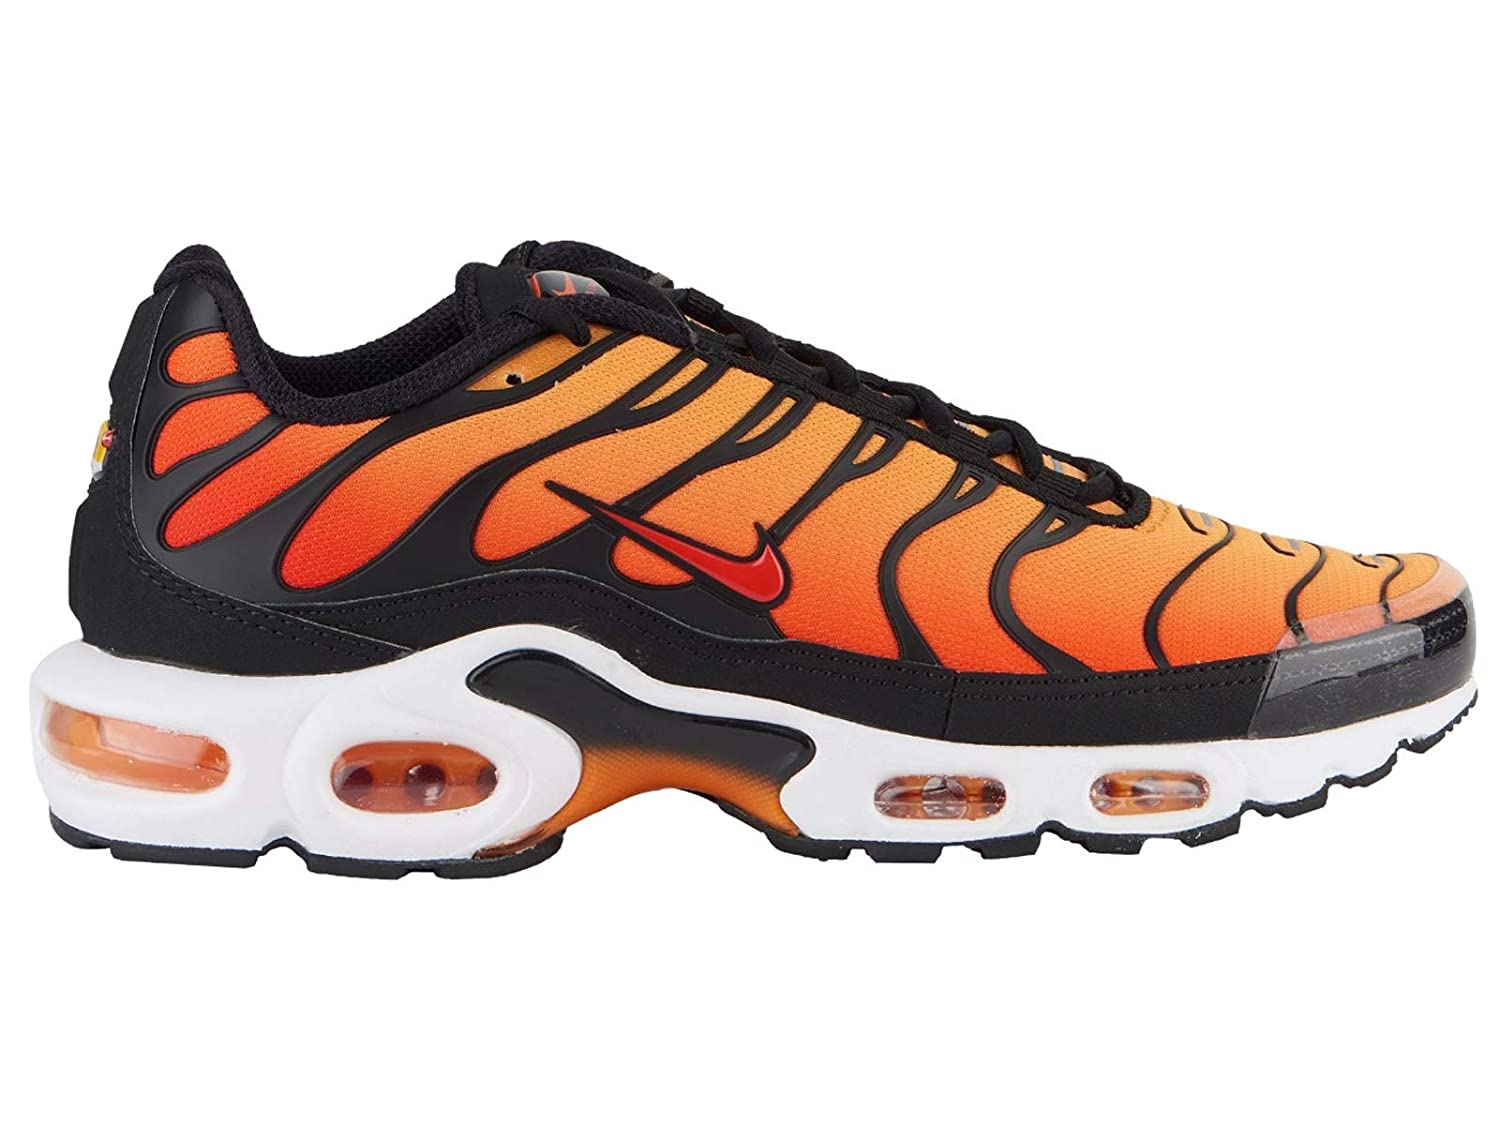 official site outlet for sale cute Amazon.com | Nike Air Max Plus Og Mens Running Trainers ...